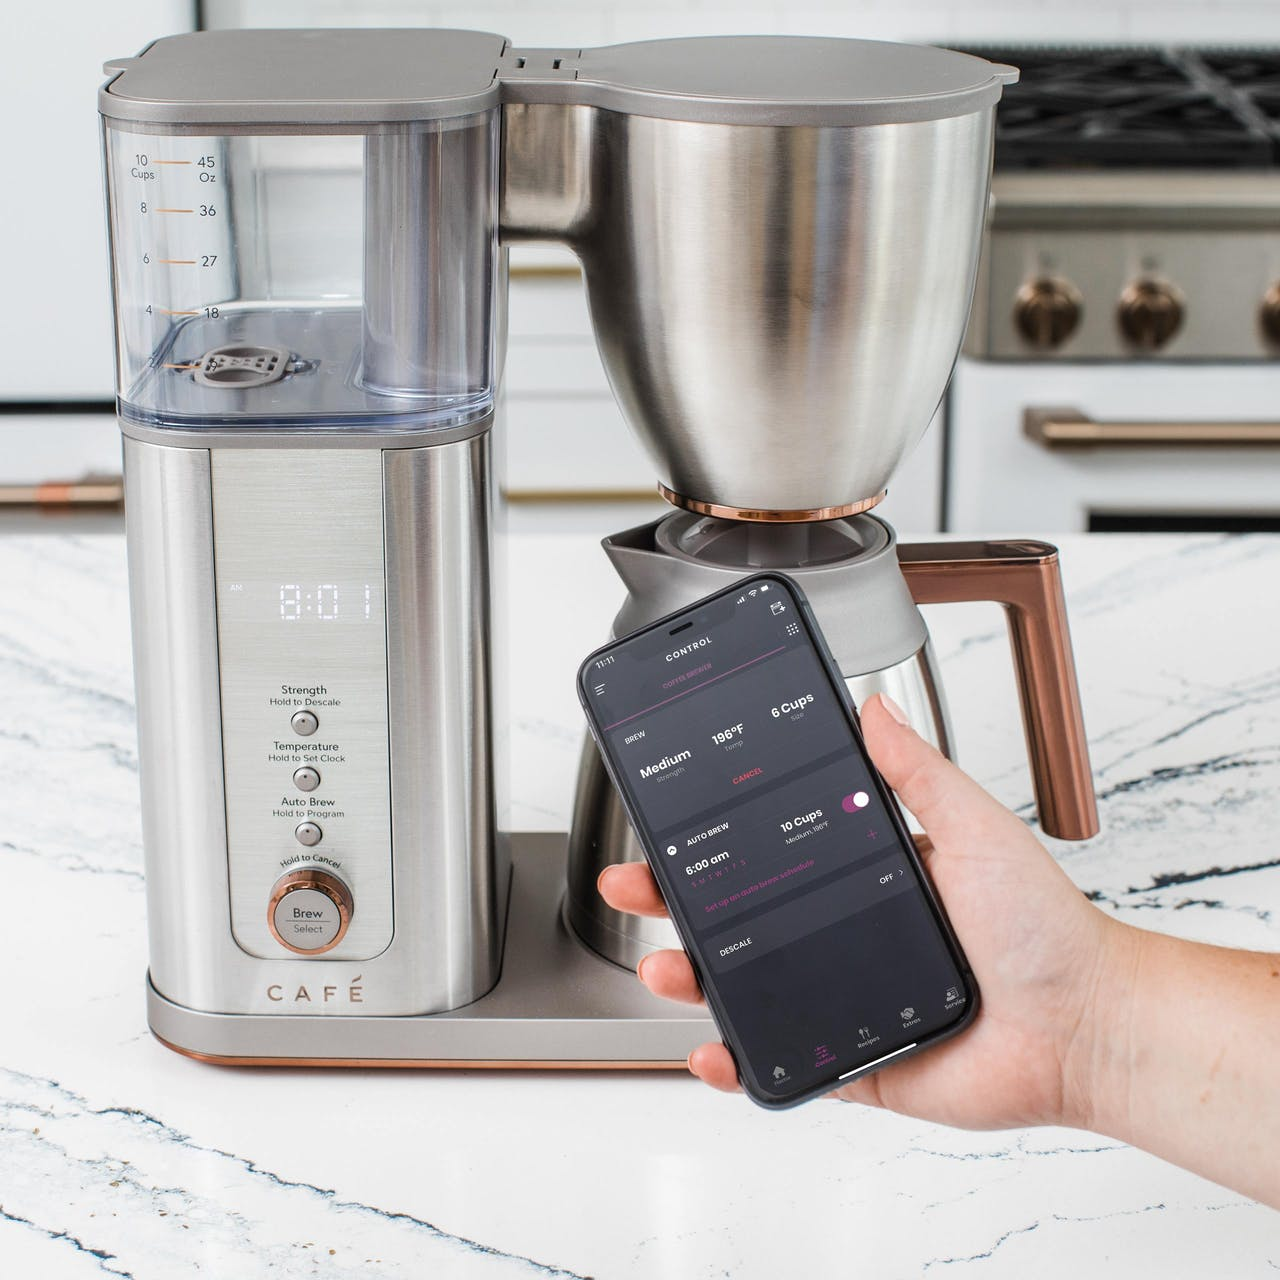 hand holding phone in front of stainless café coffee maker showing smartHQ app